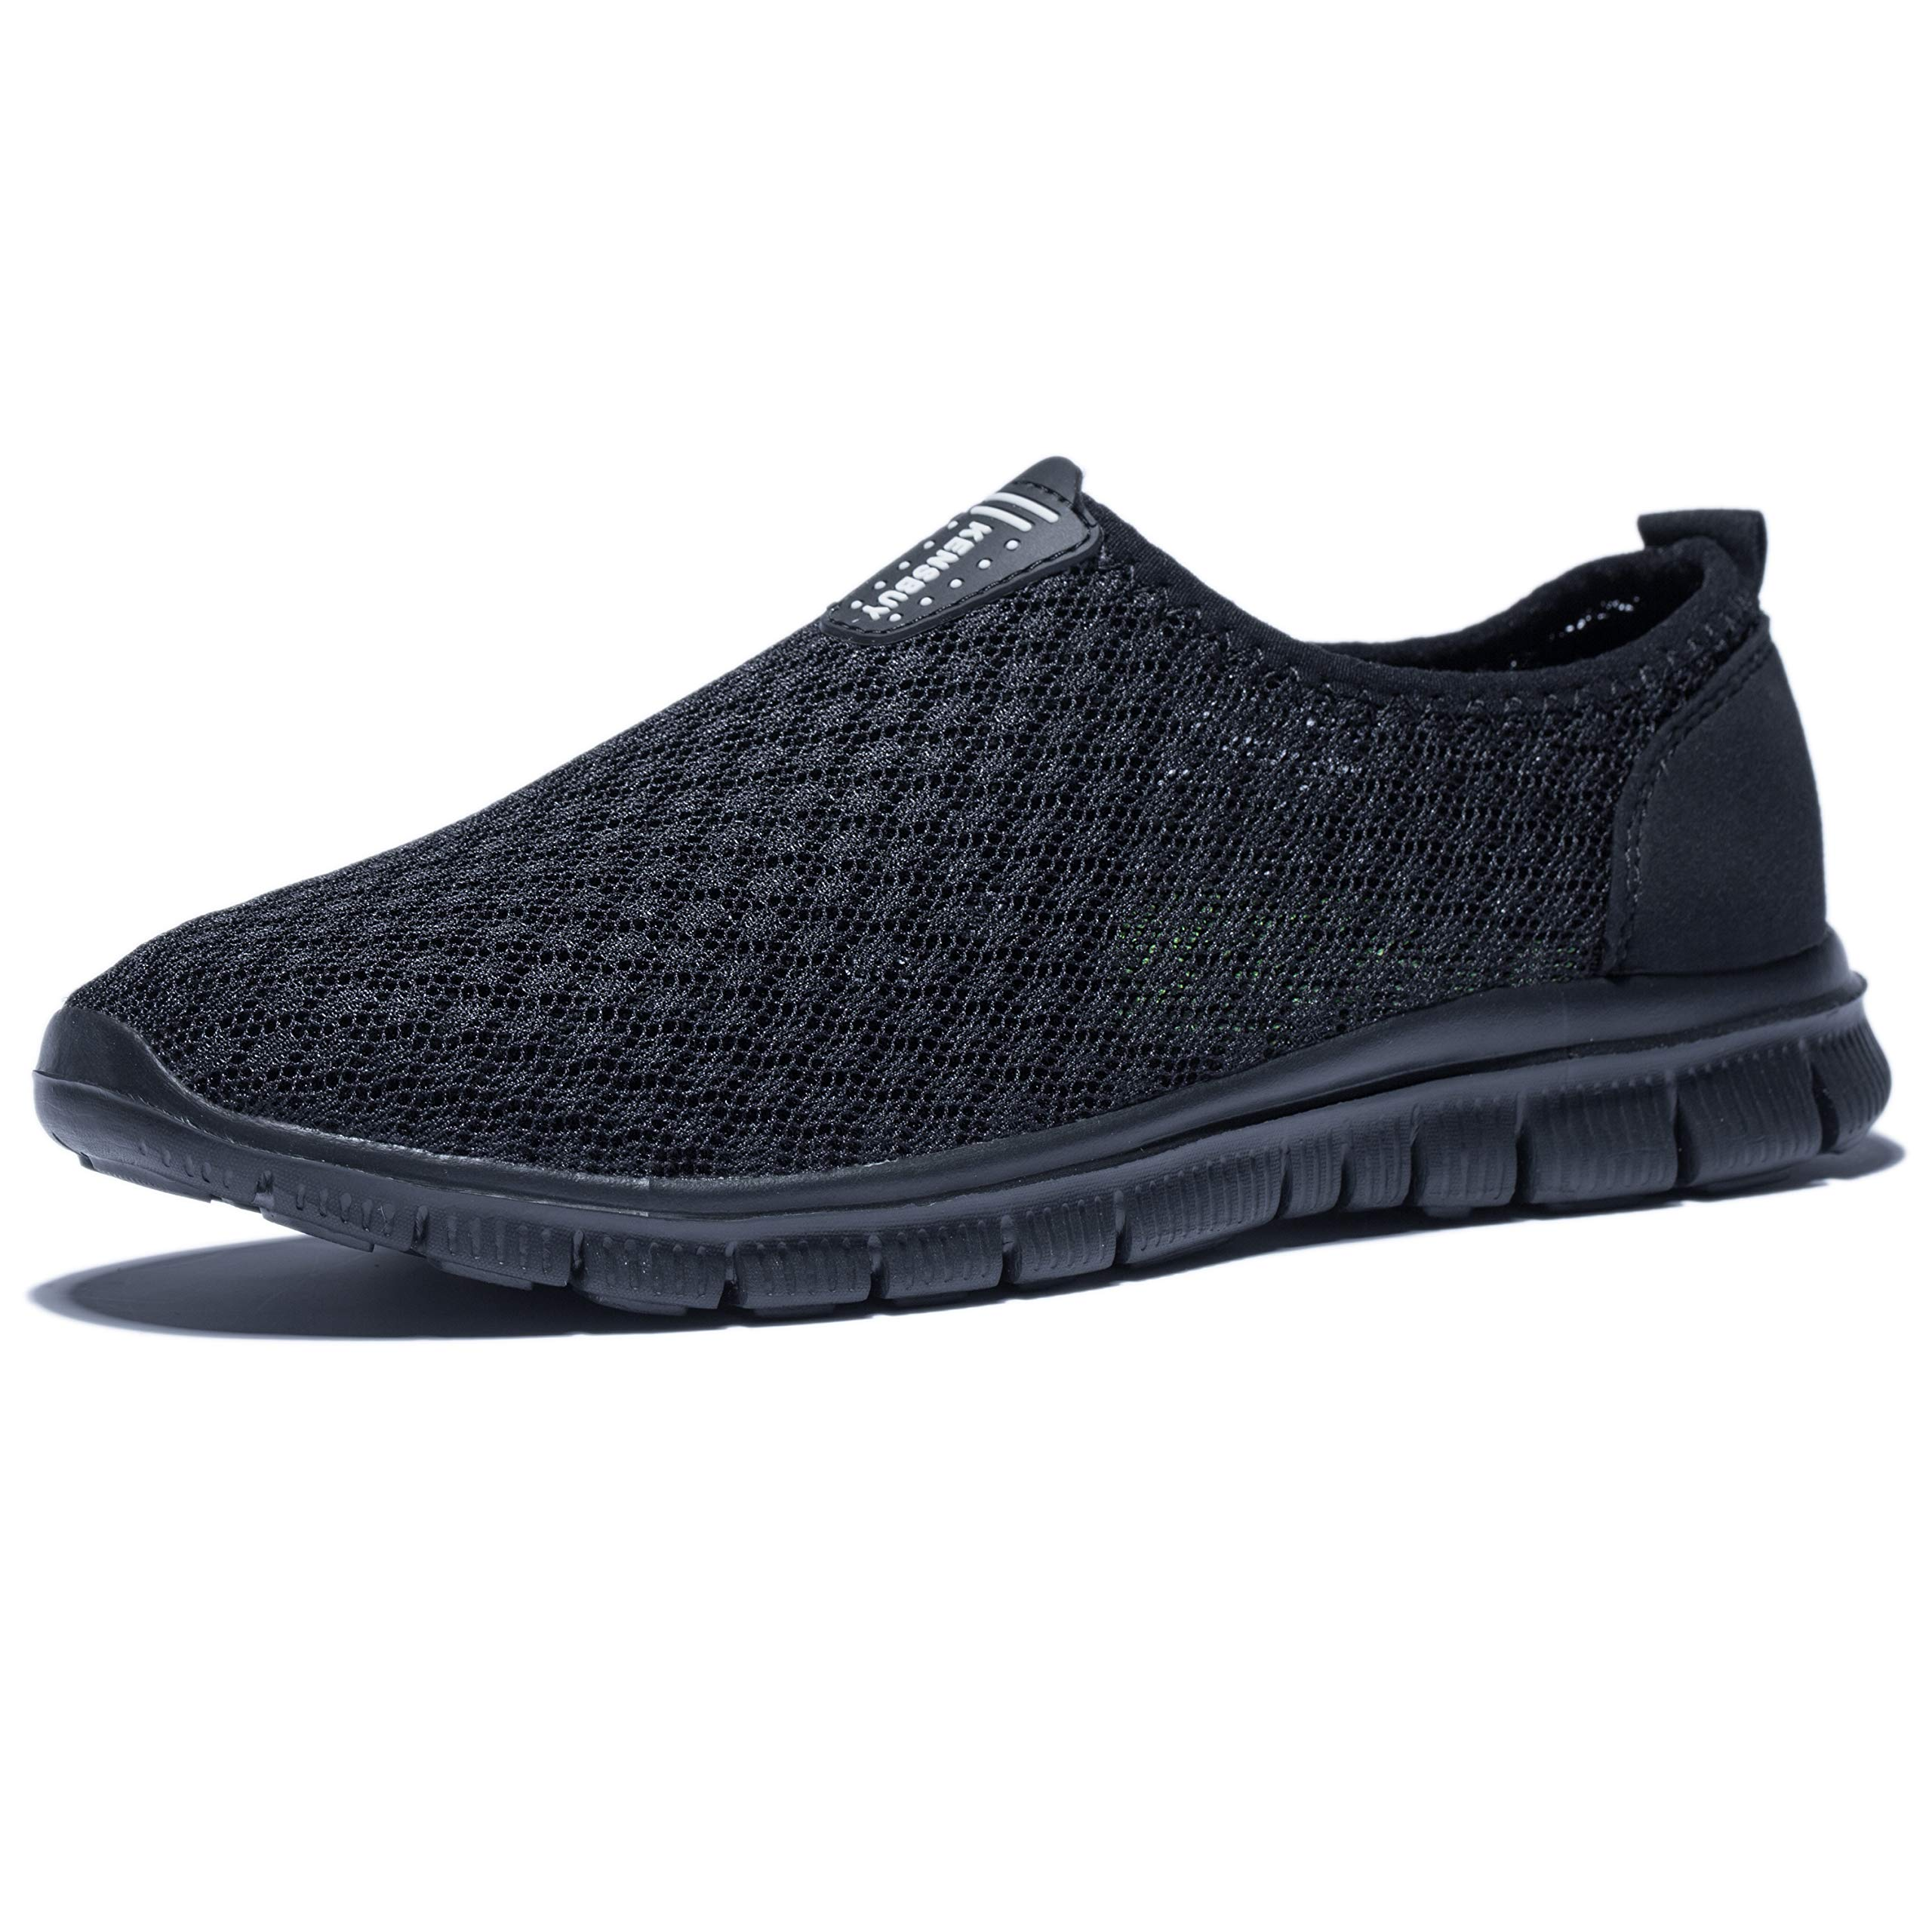 KENSBUY Mens Breathable and Durable Sports Running Shoes Lightweight Mesh Walking Sneakers (8 M US Men, Black/Black) by KENSBUY (Image #2)